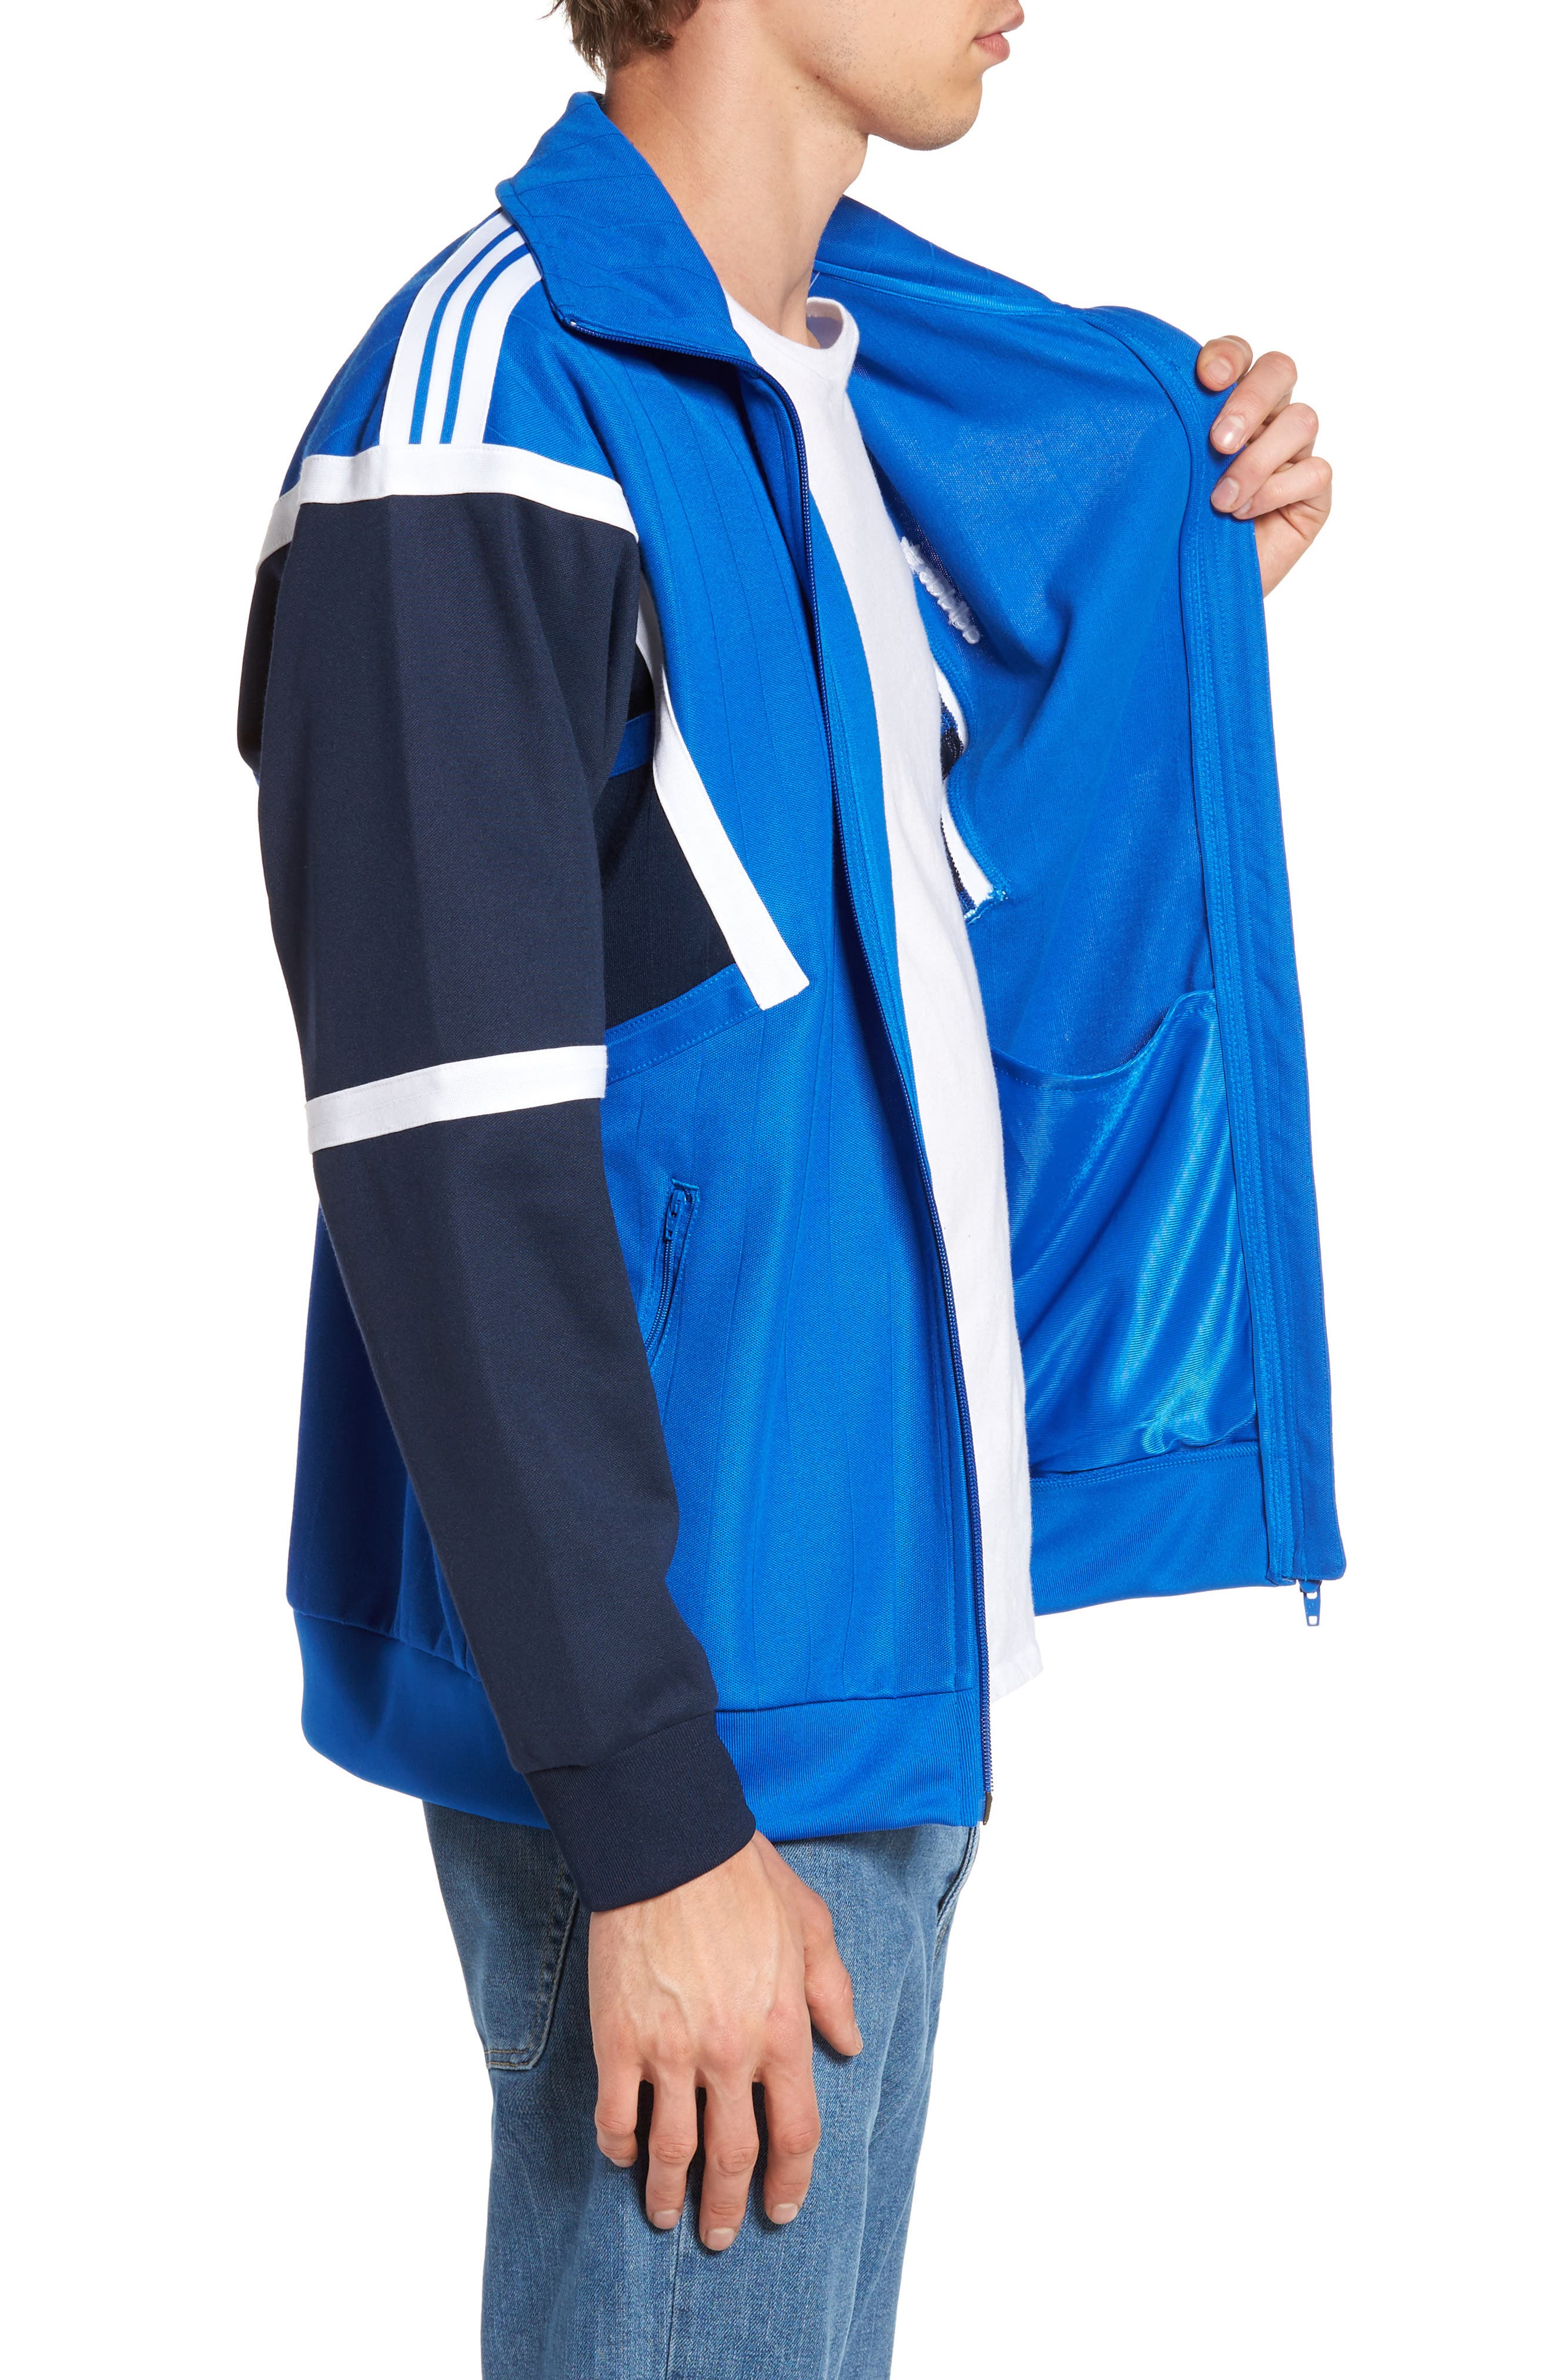 Water Resistant Training Track Jacket,                             Alternate thumbnail 3, color,                             Blue